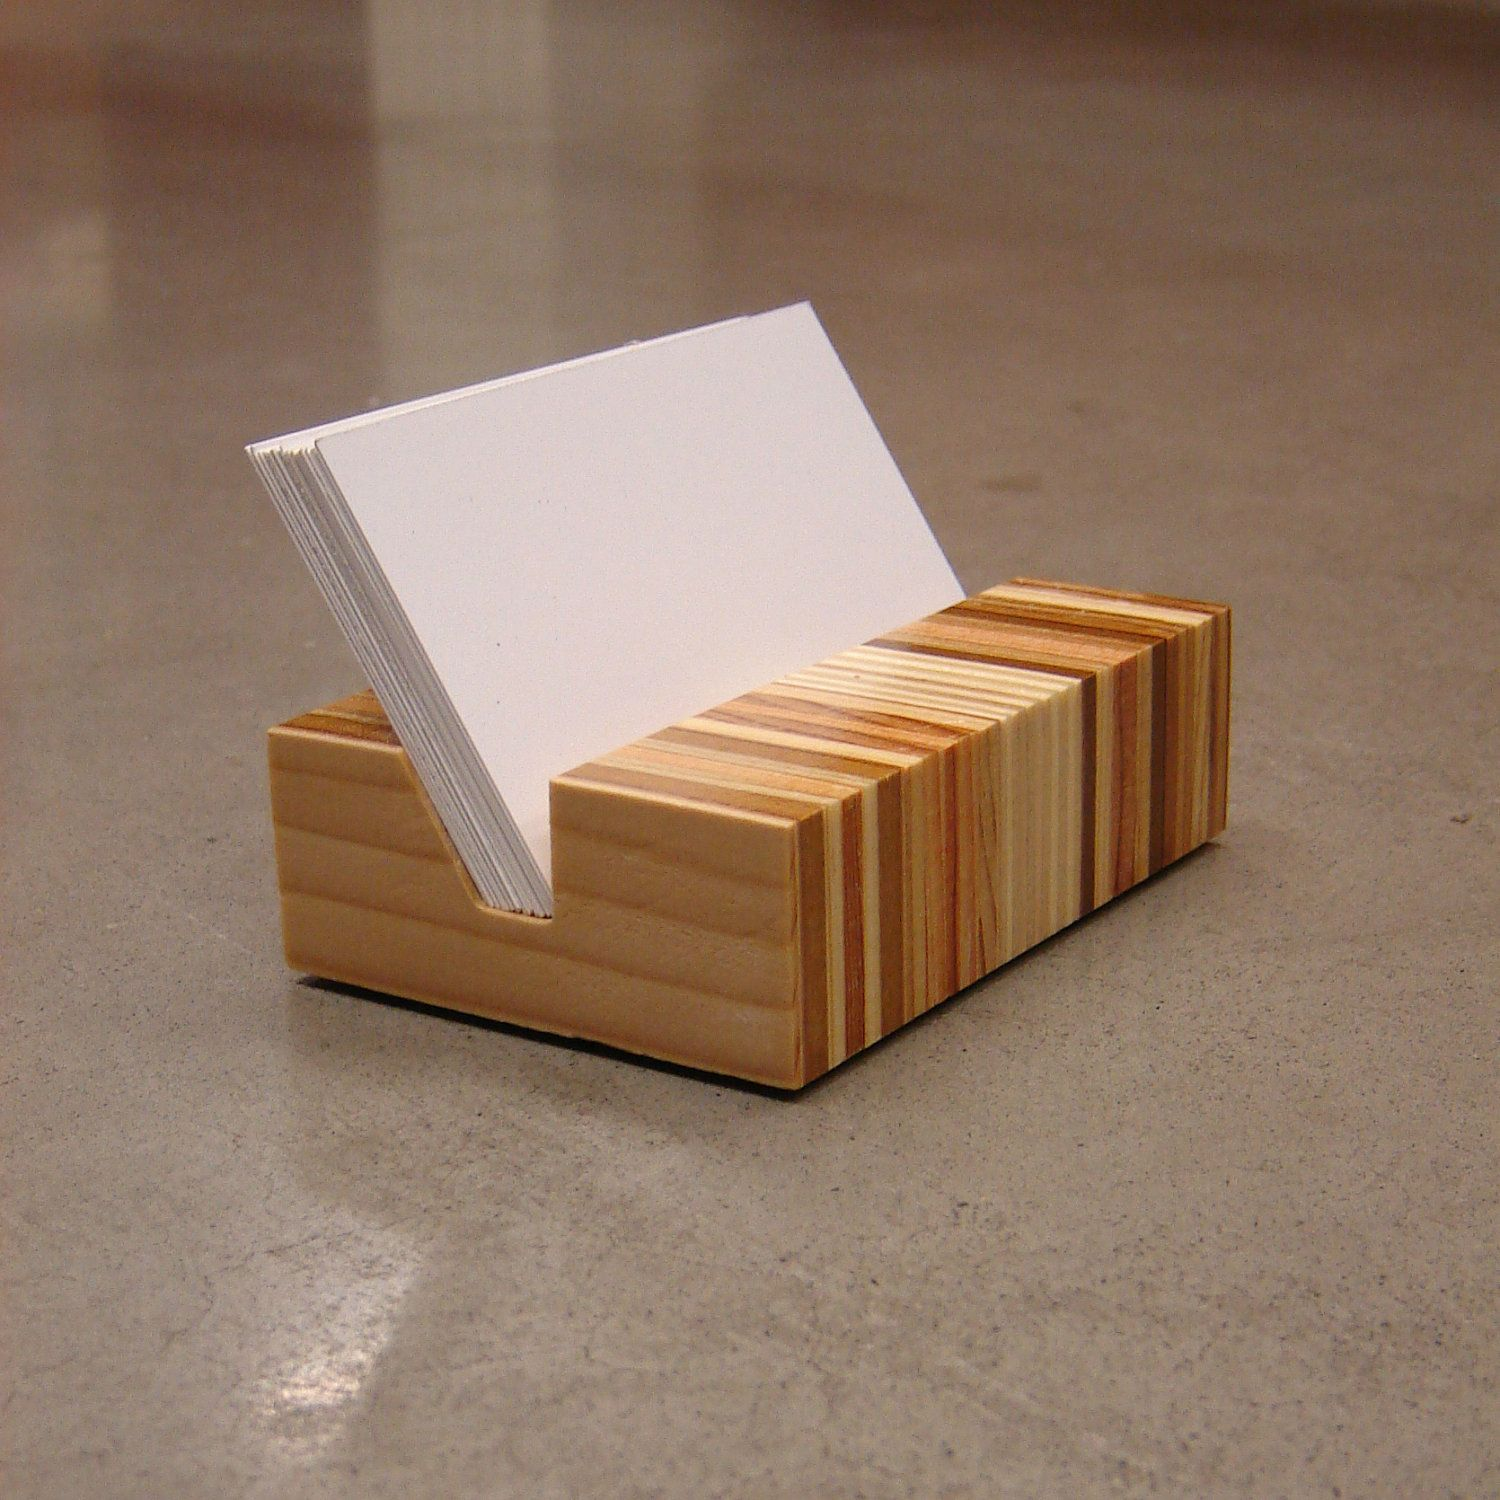 Retro Eames Era Inspired Minimalist Wood Business Card Holder ...